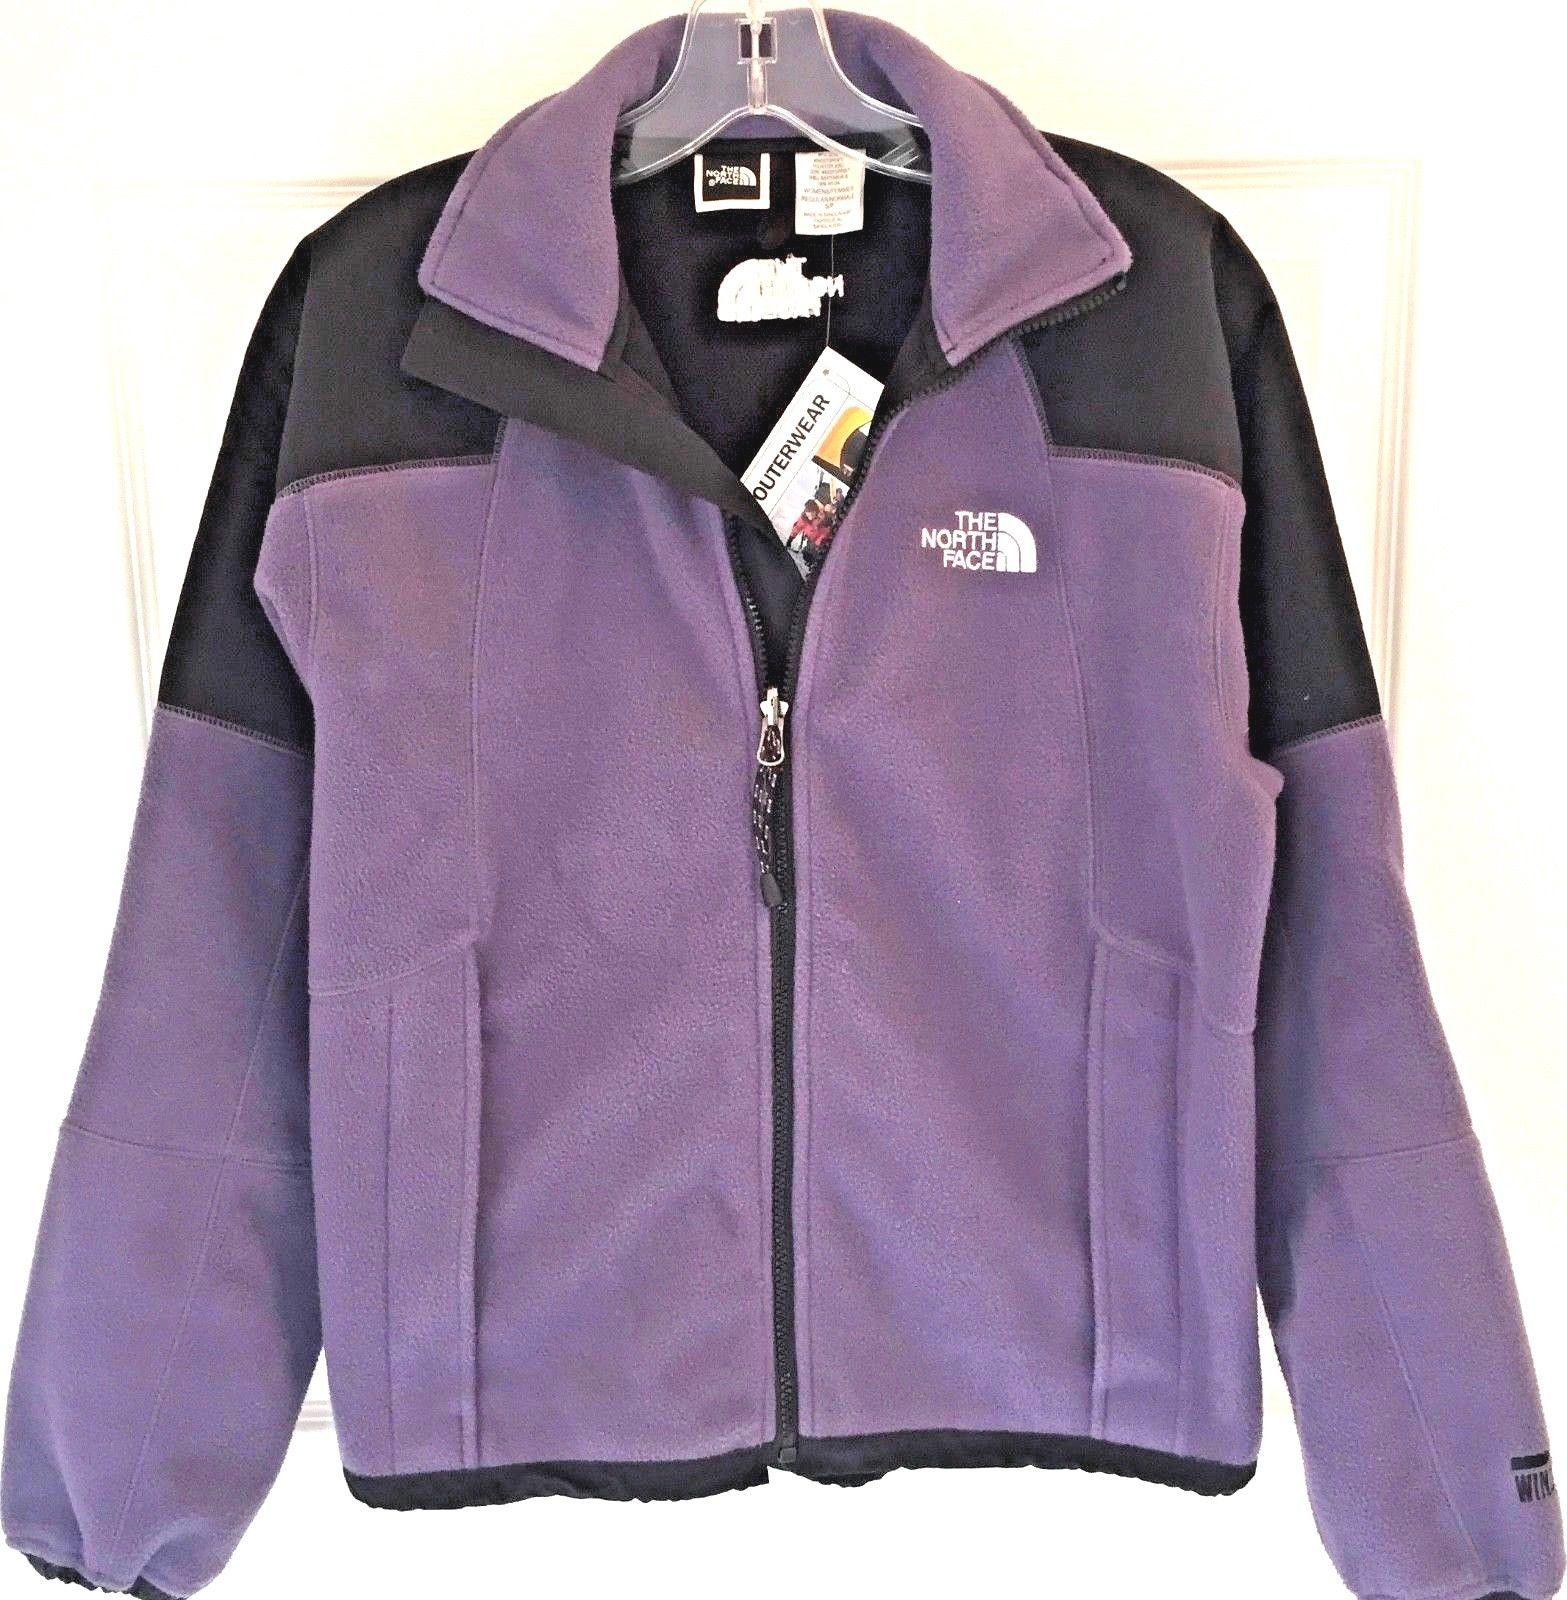 ab792813d Nwt $289 Sz S The North Face Women's Pamir and 50 similar items